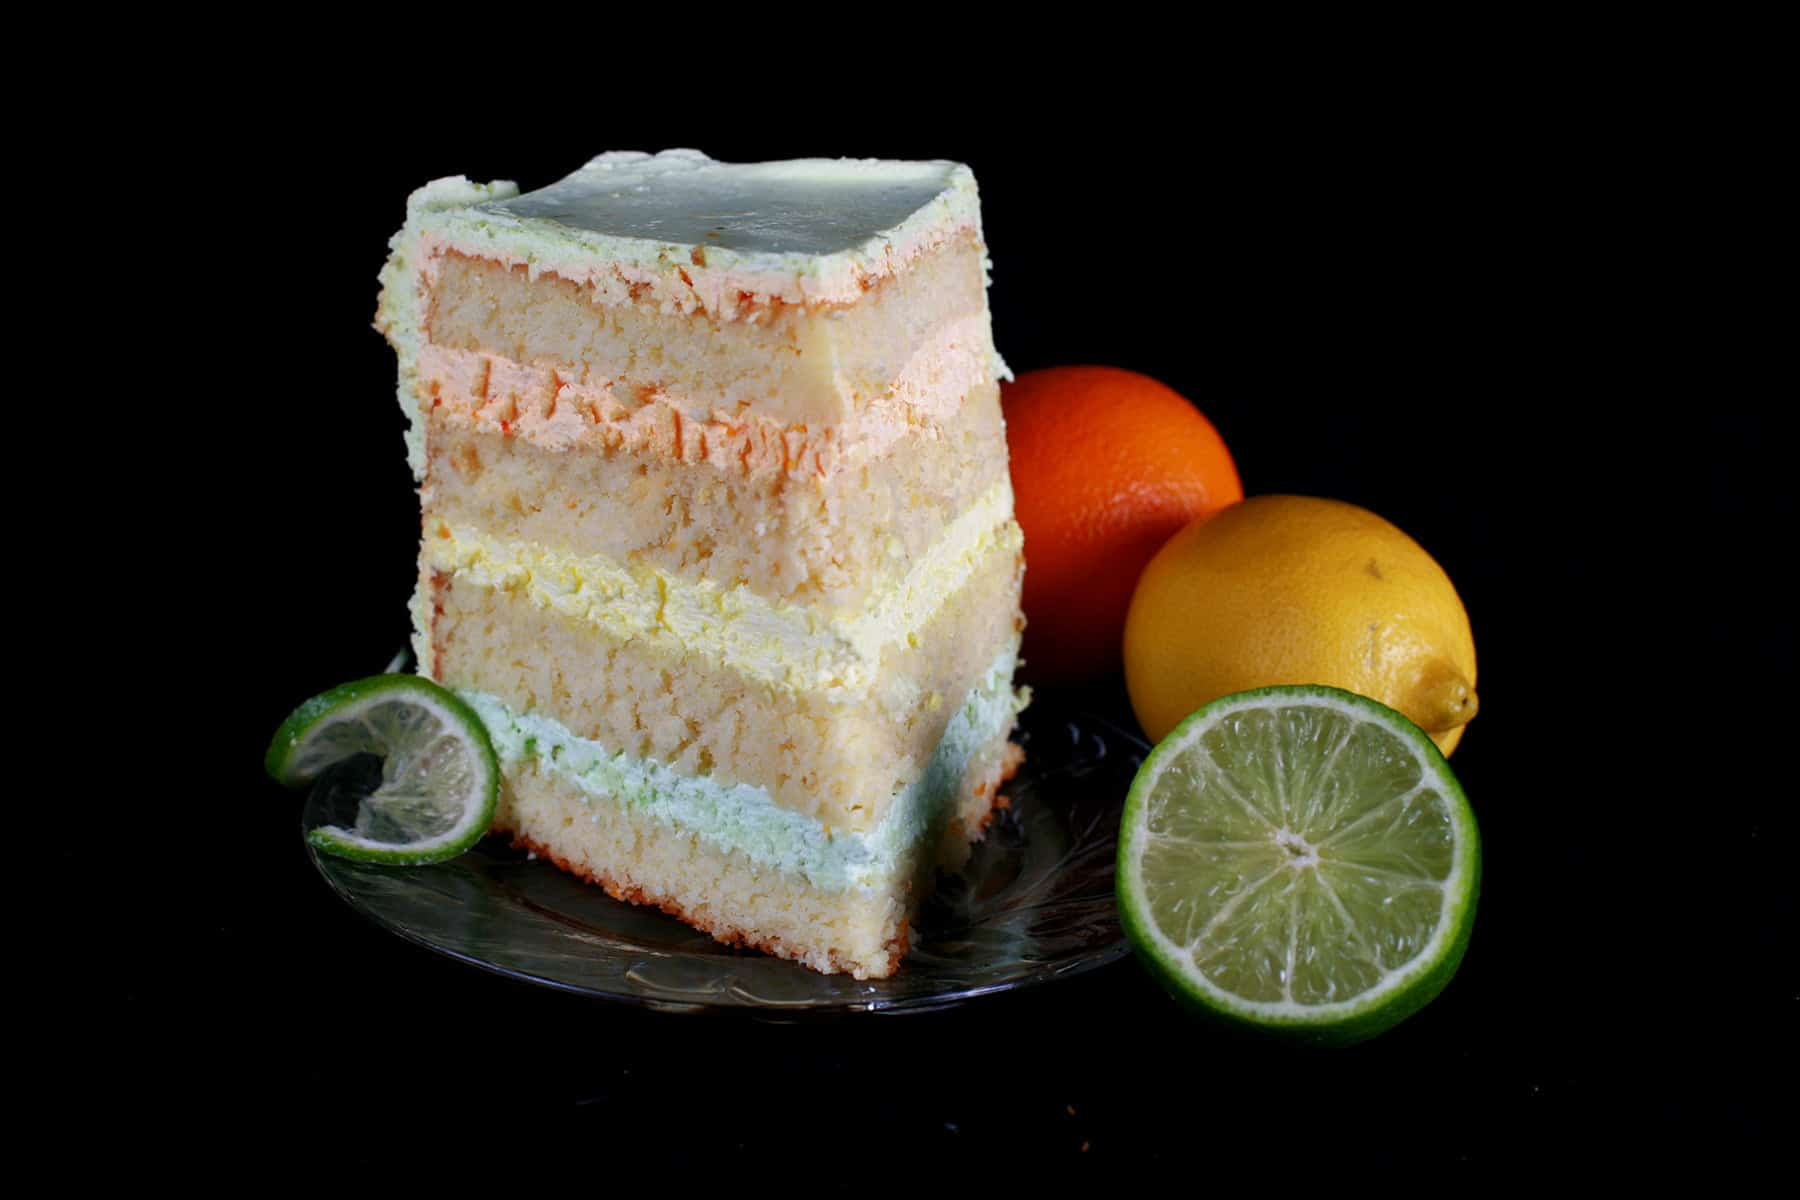 A slice of citrus splendor cake is shown on a plate, with an orange, lemon, and half a lime sitting next to it.